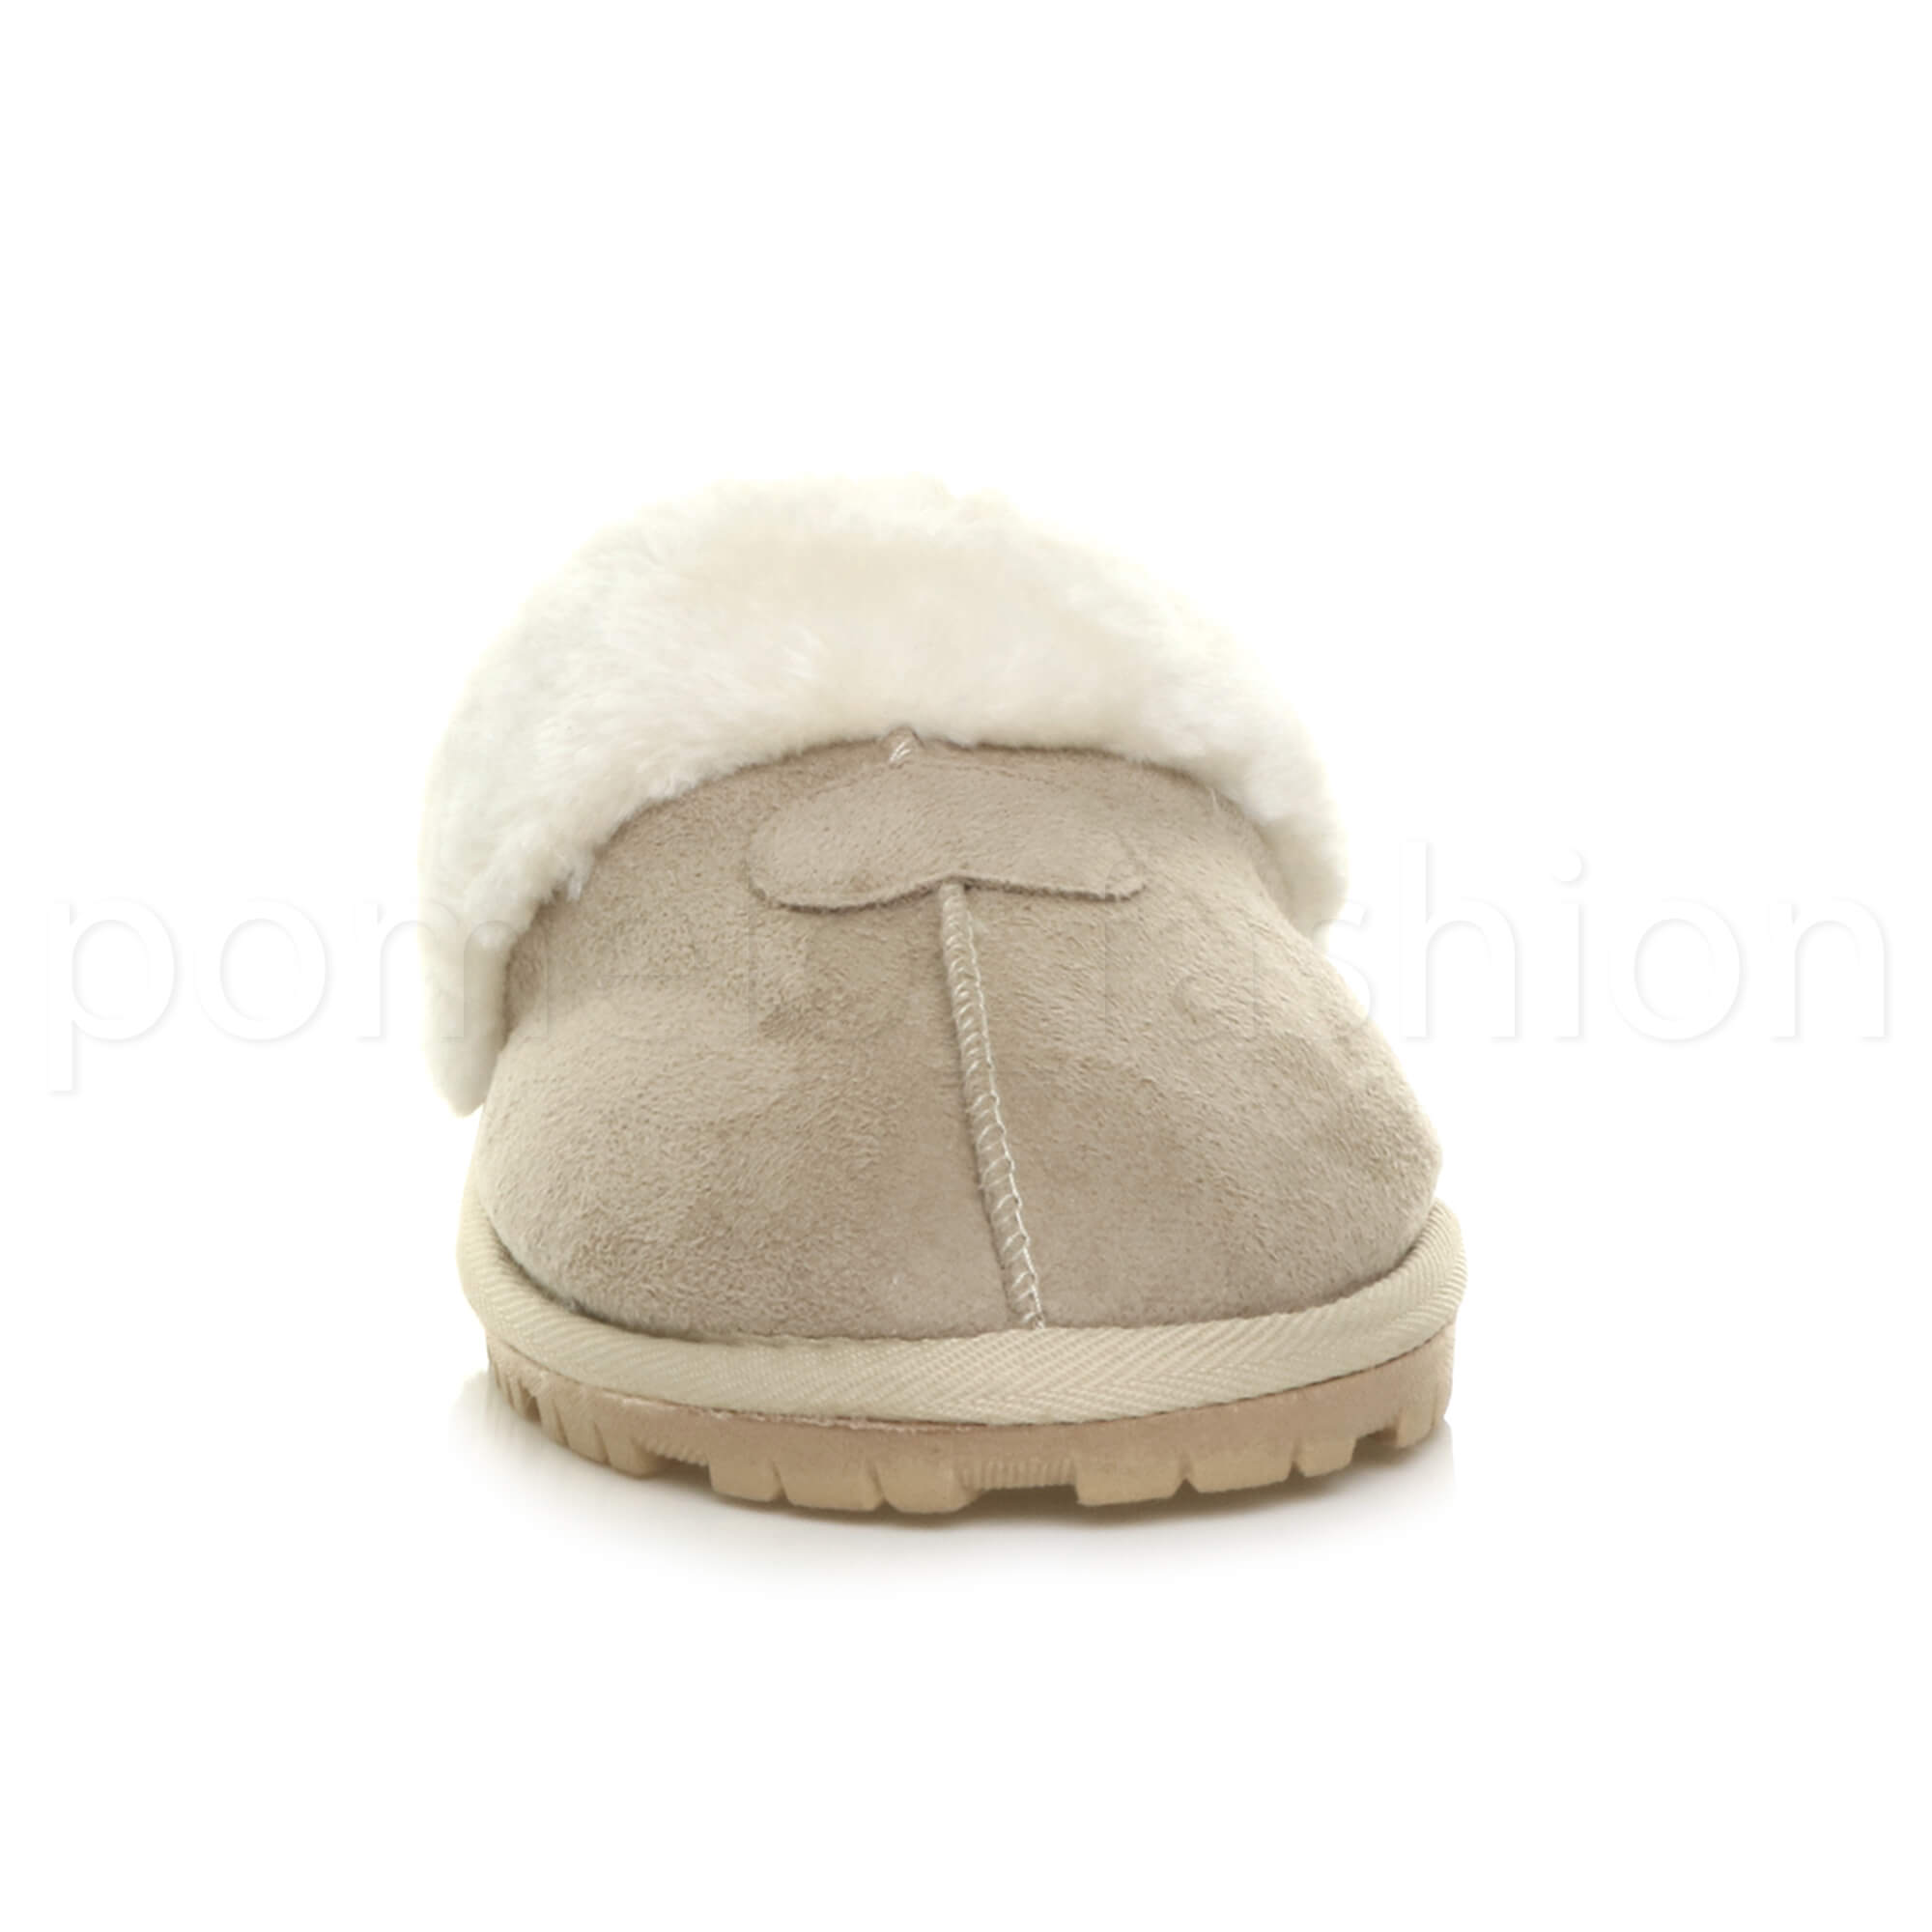 WOMENS-LADIES-FLAT-FUR-LINED-COMFORTABLE-WINTER-MULES-SLIPPERS-HOUSE-SHOES-SIZE thumbnail 7